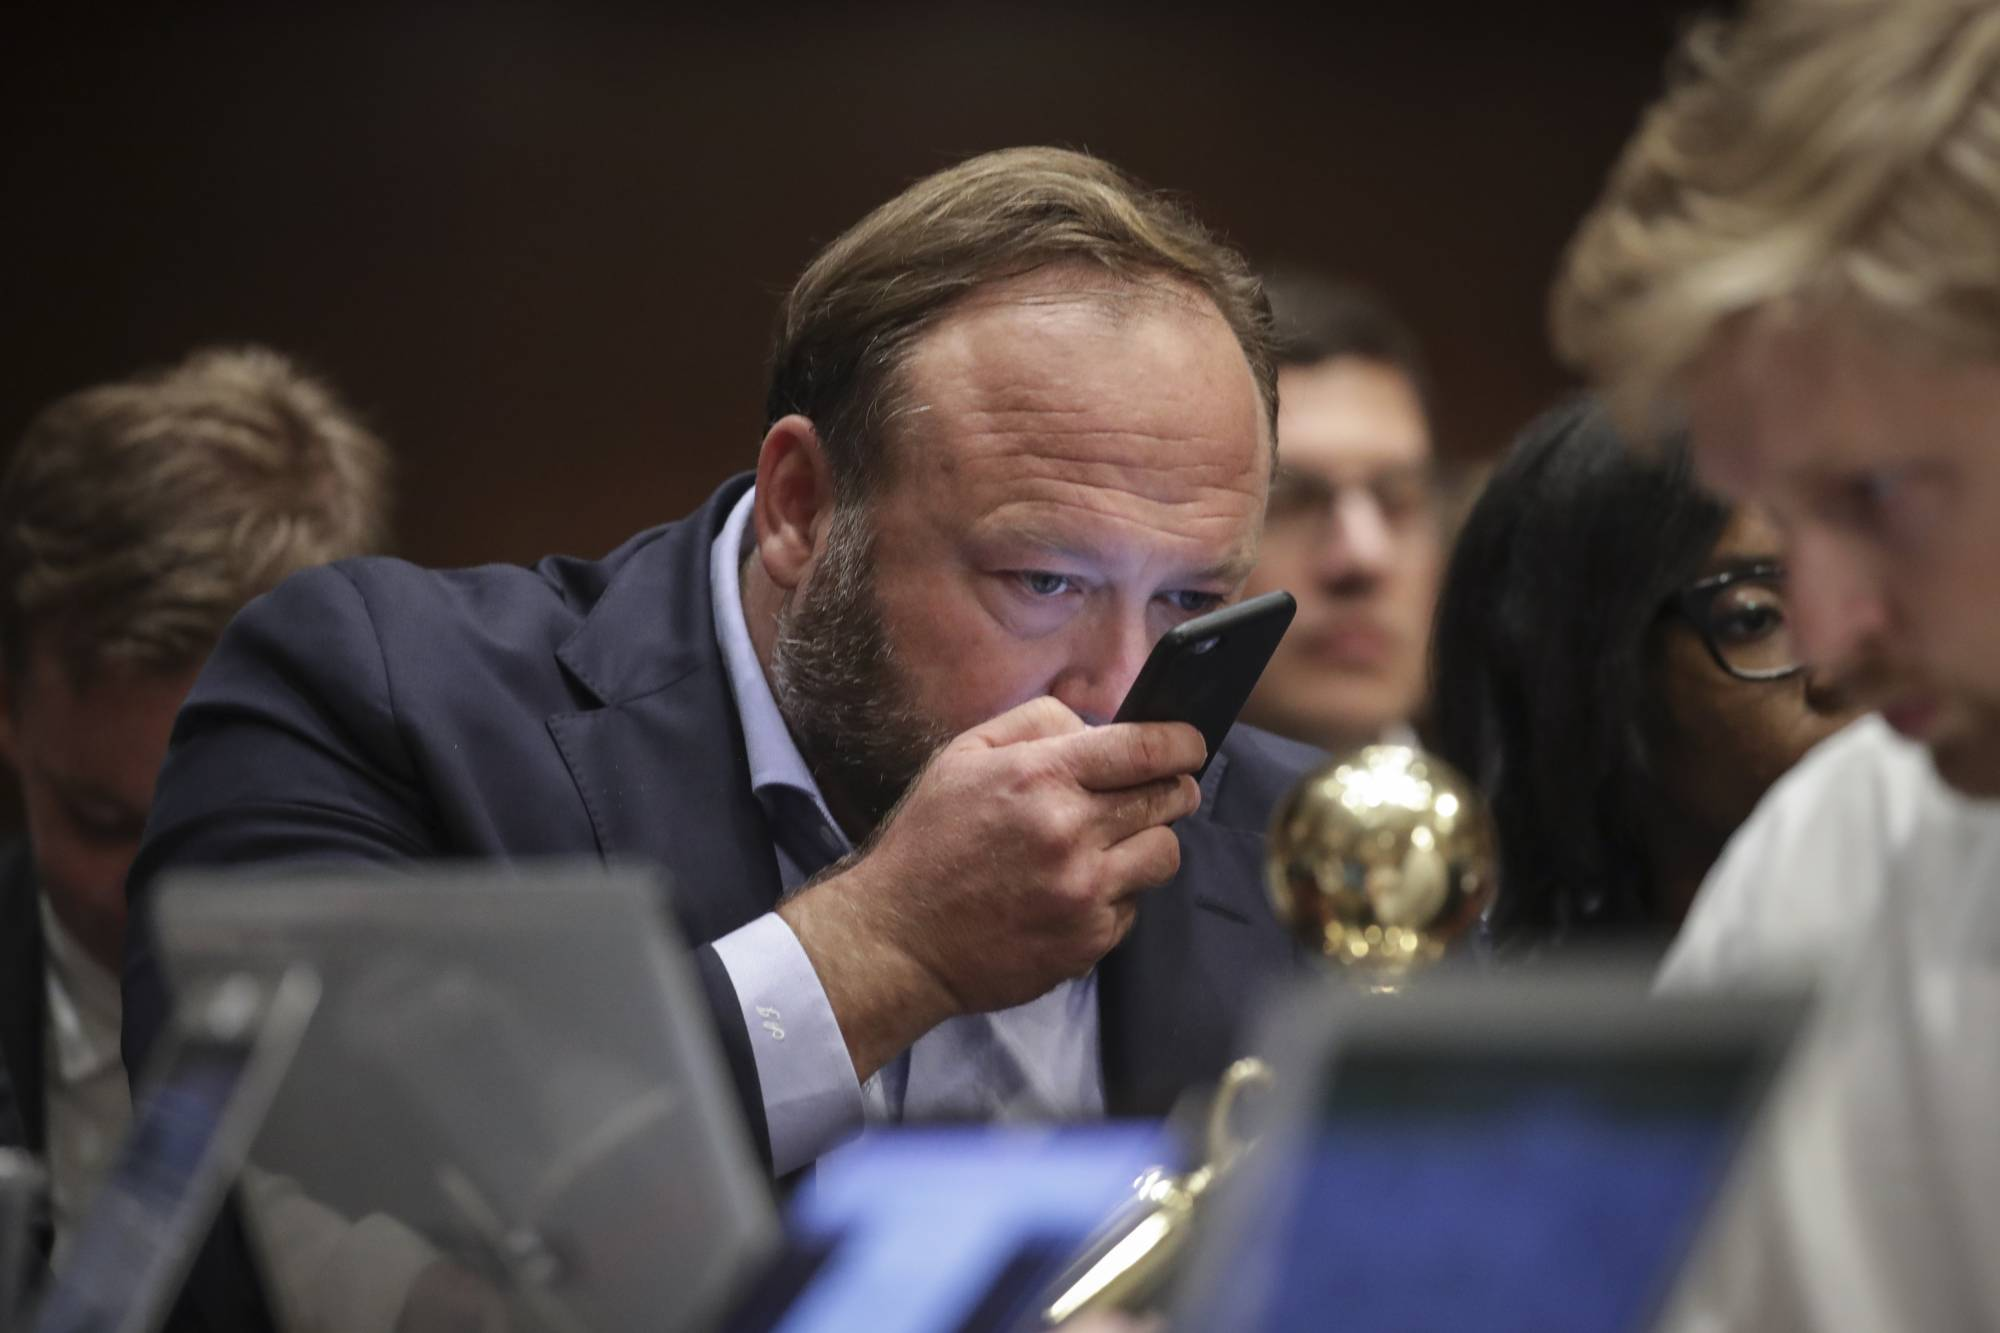 PayPal terminates its contract with Alex Jones conspiracy site Infowars.